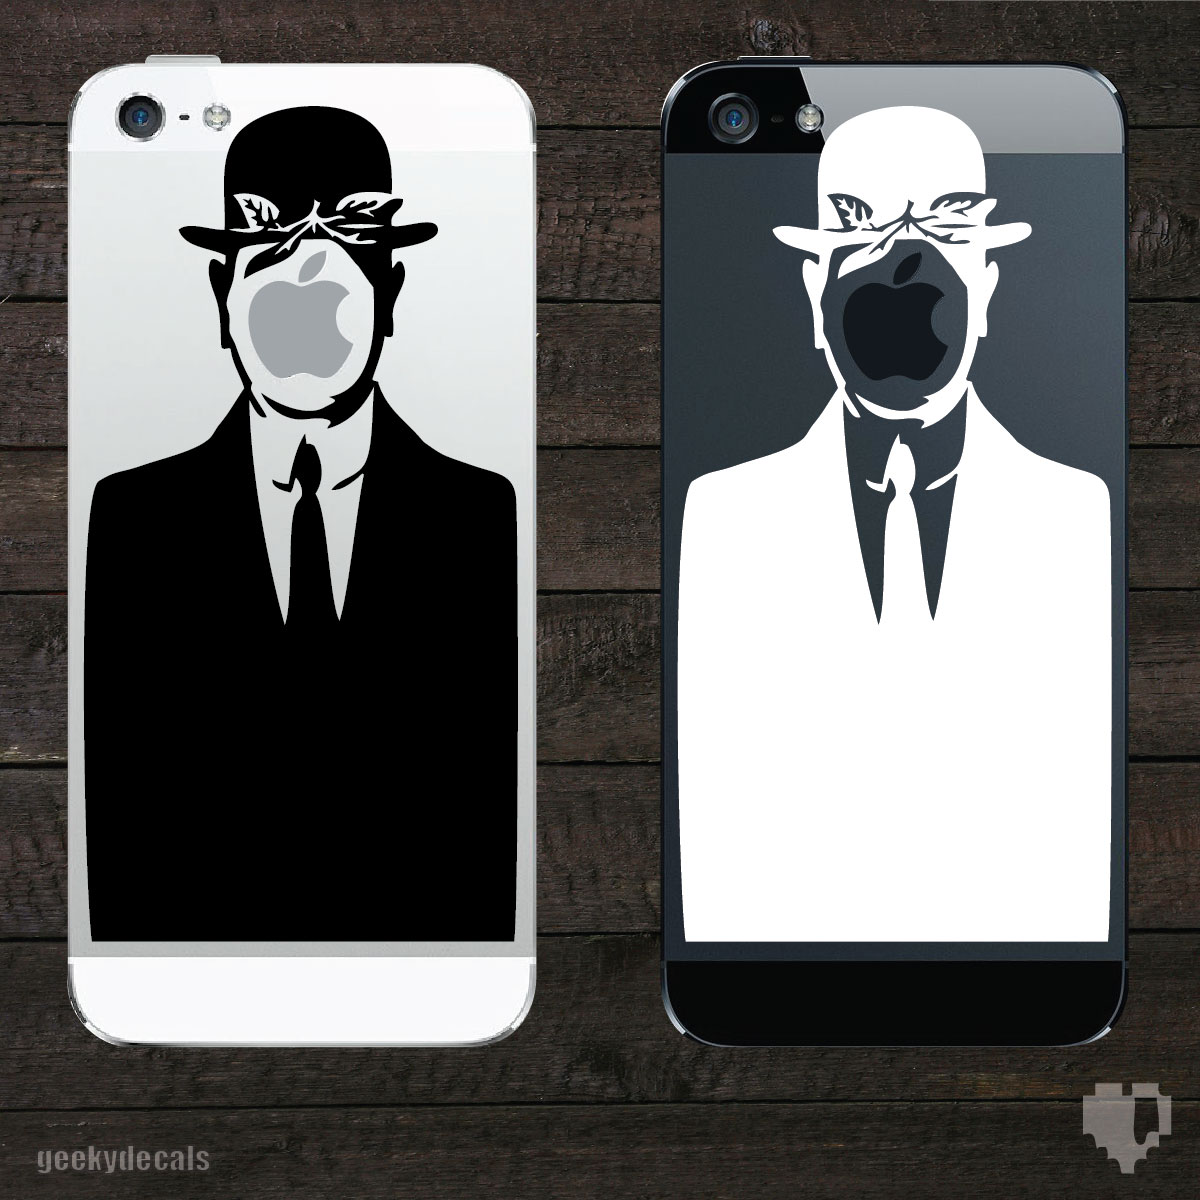 Son of man iphone decal iphone sticker